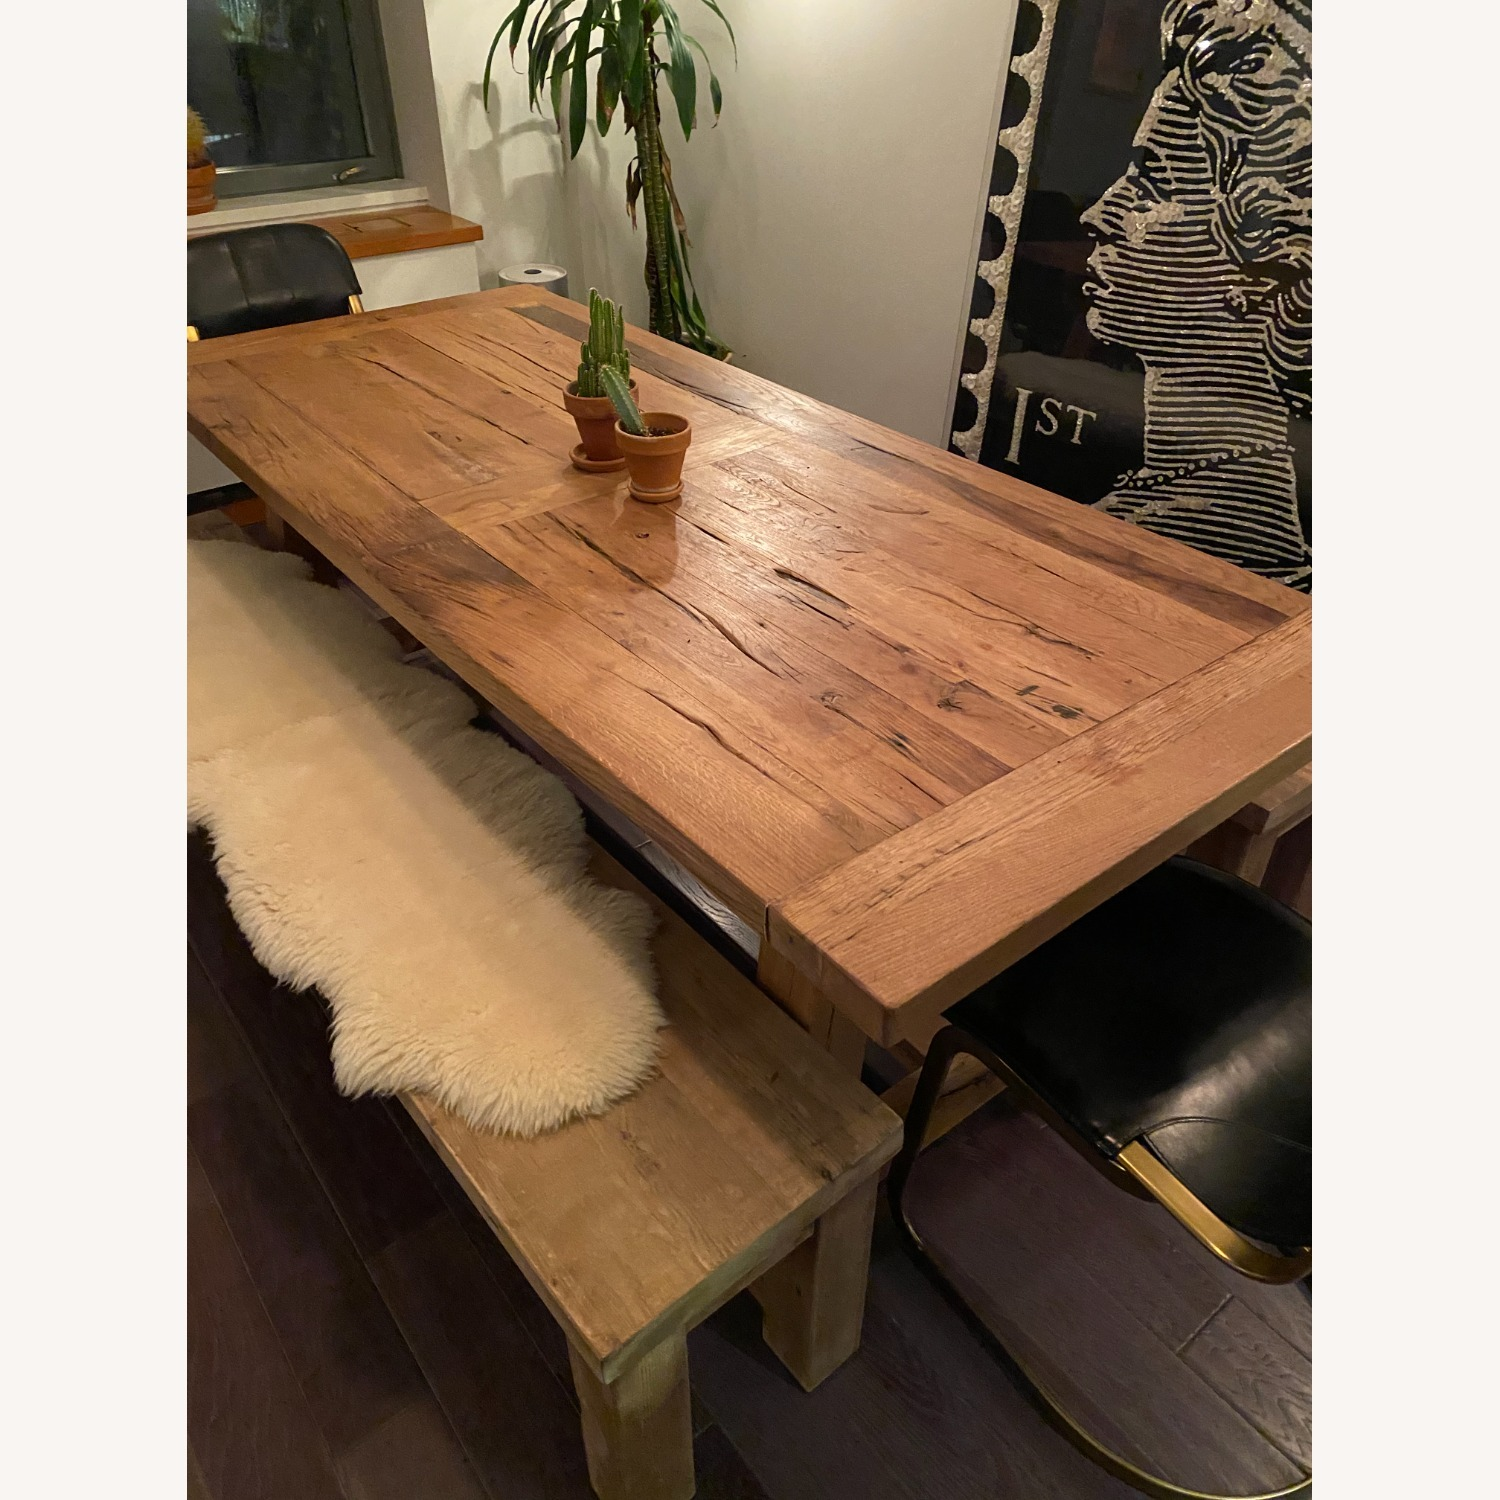 Restoration Hardware Russian Oak Table and Benches - image-1